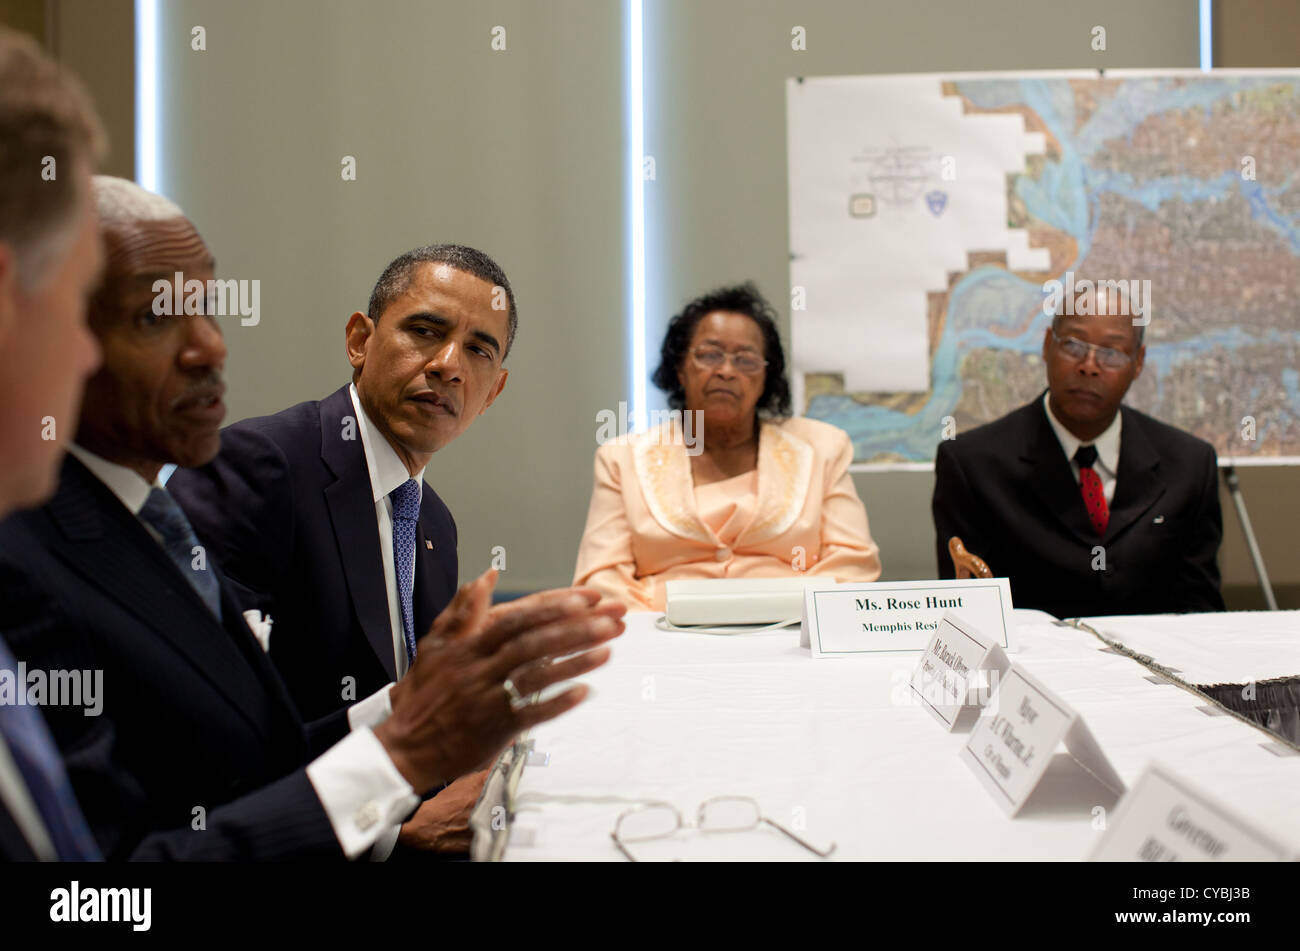 US President Barack Obama listens as Memphis Mayor AC Wharton speaks during a meeting with elected officials and - Stock Image